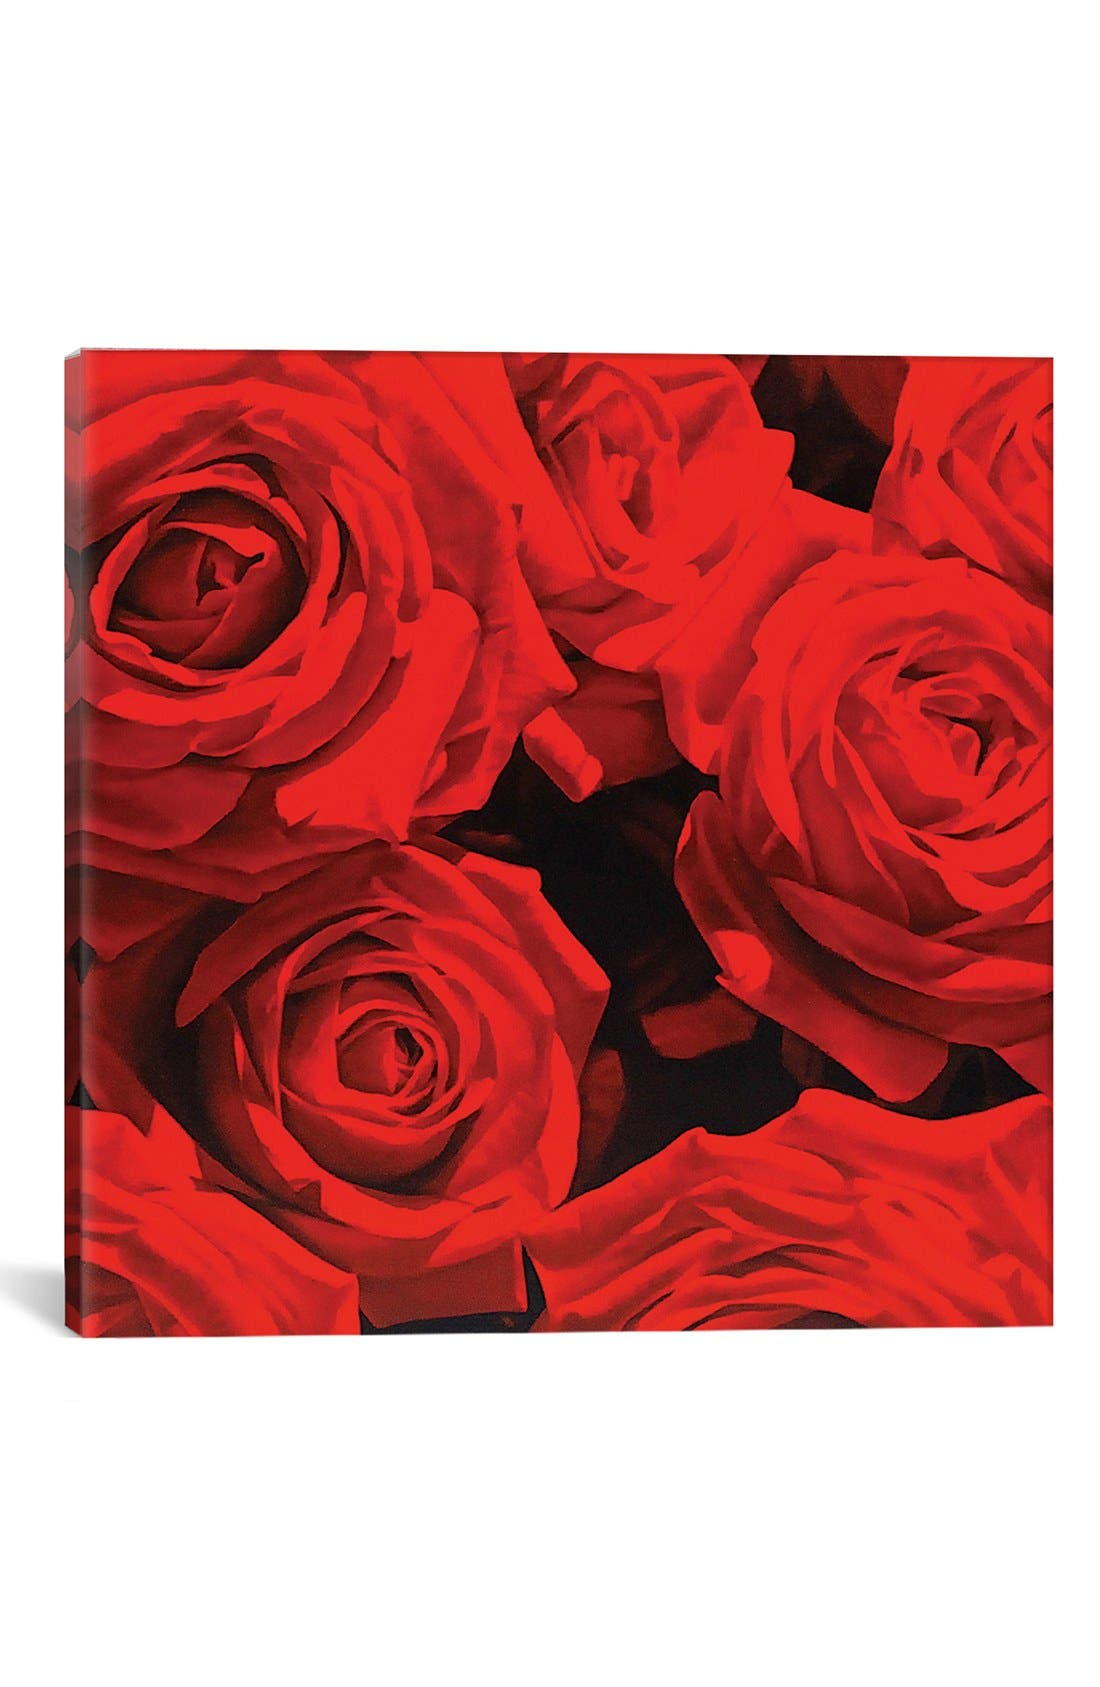 'Red Roses' Giclée Print Canvas Art,                         Main,                         color, Red